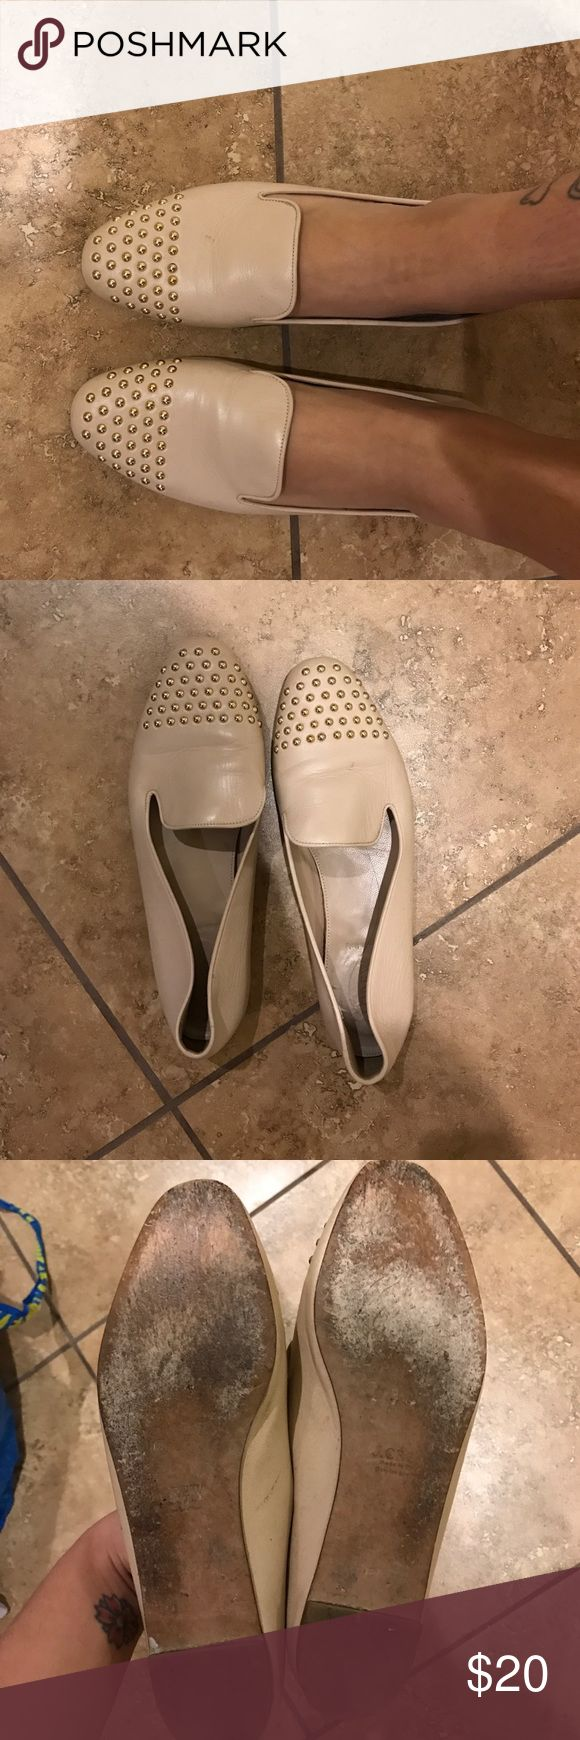 Jcrew tan loafers Tan leather loafers size 10. Very comfortable J. Crew Shoes Flats & Loafers